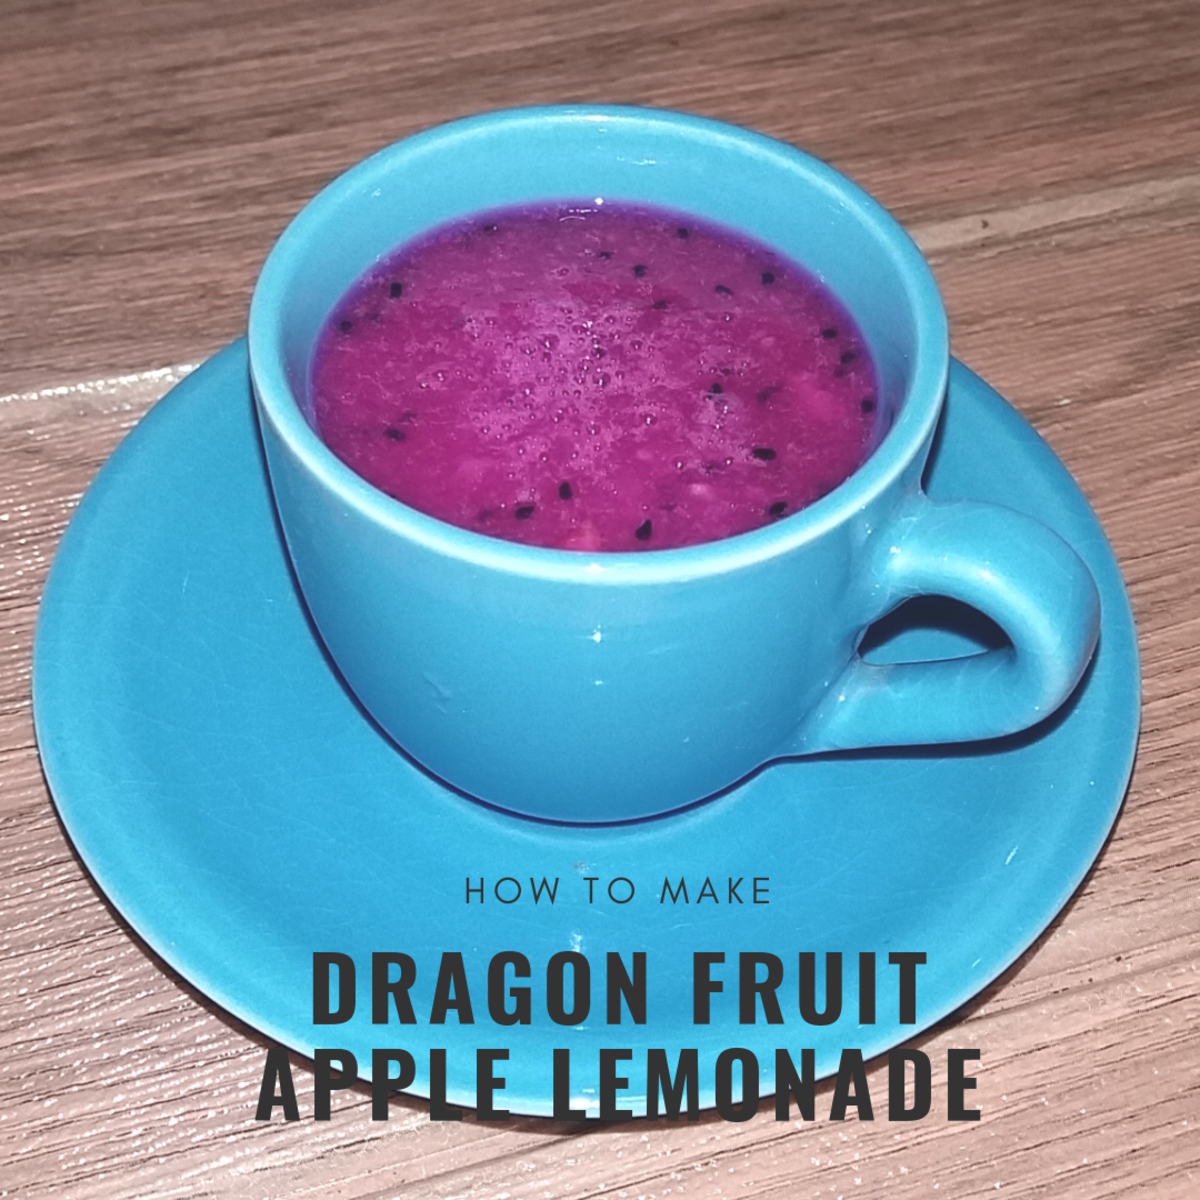 How to Make Dragon Fruit Apple Lemonade